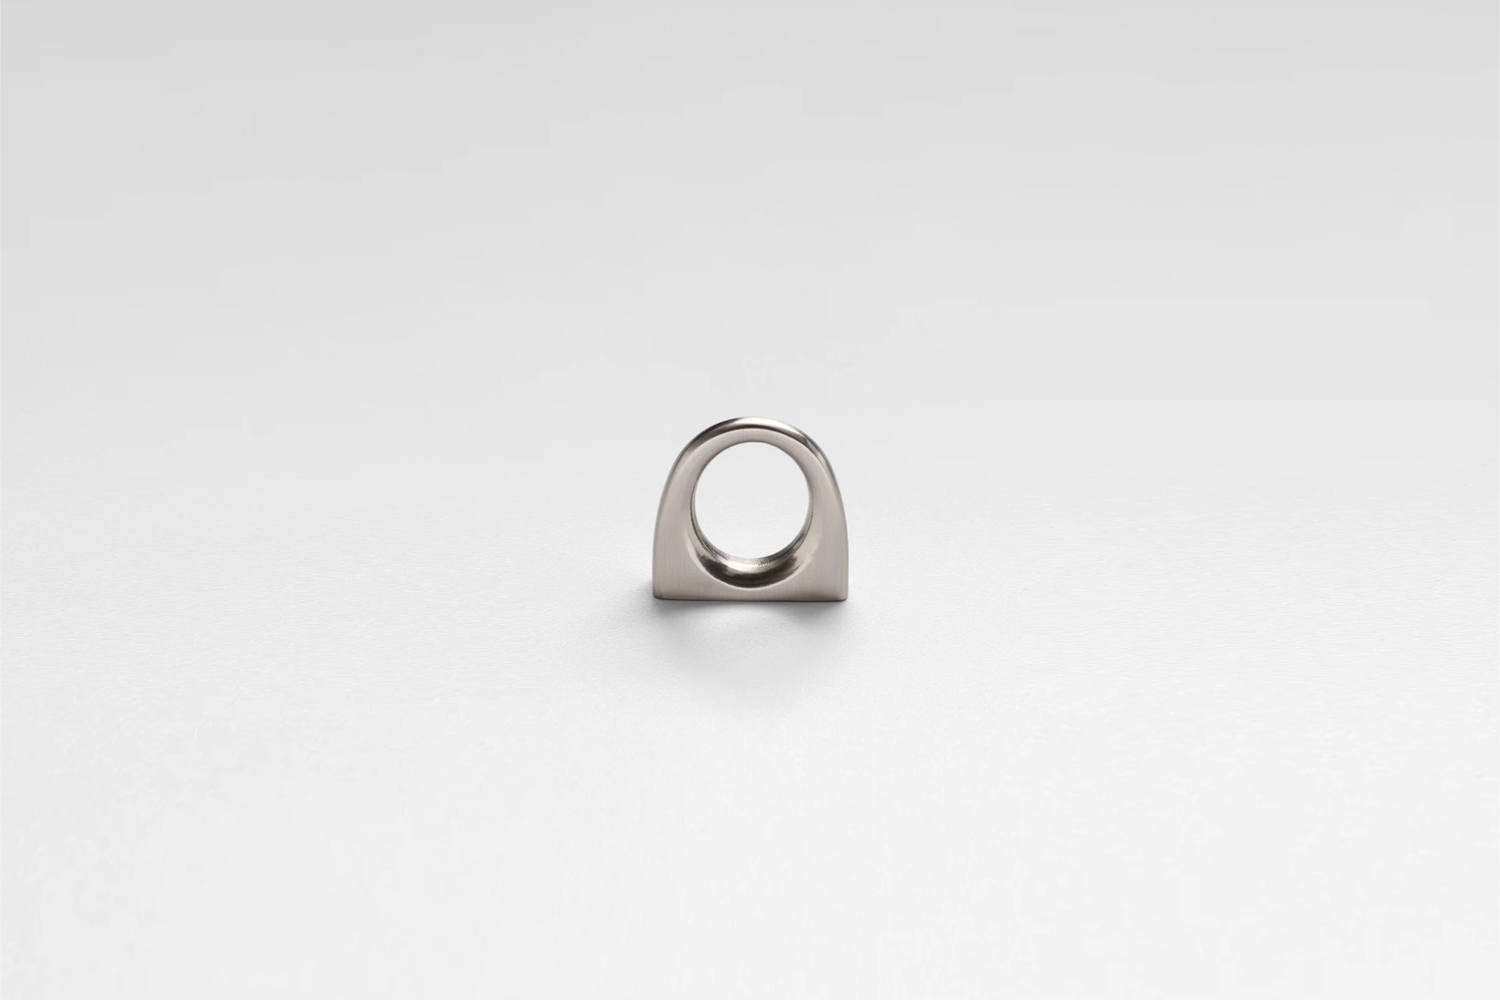 The Gateway Ring Pull in Satin Nickel is $ at Schoolhouse.